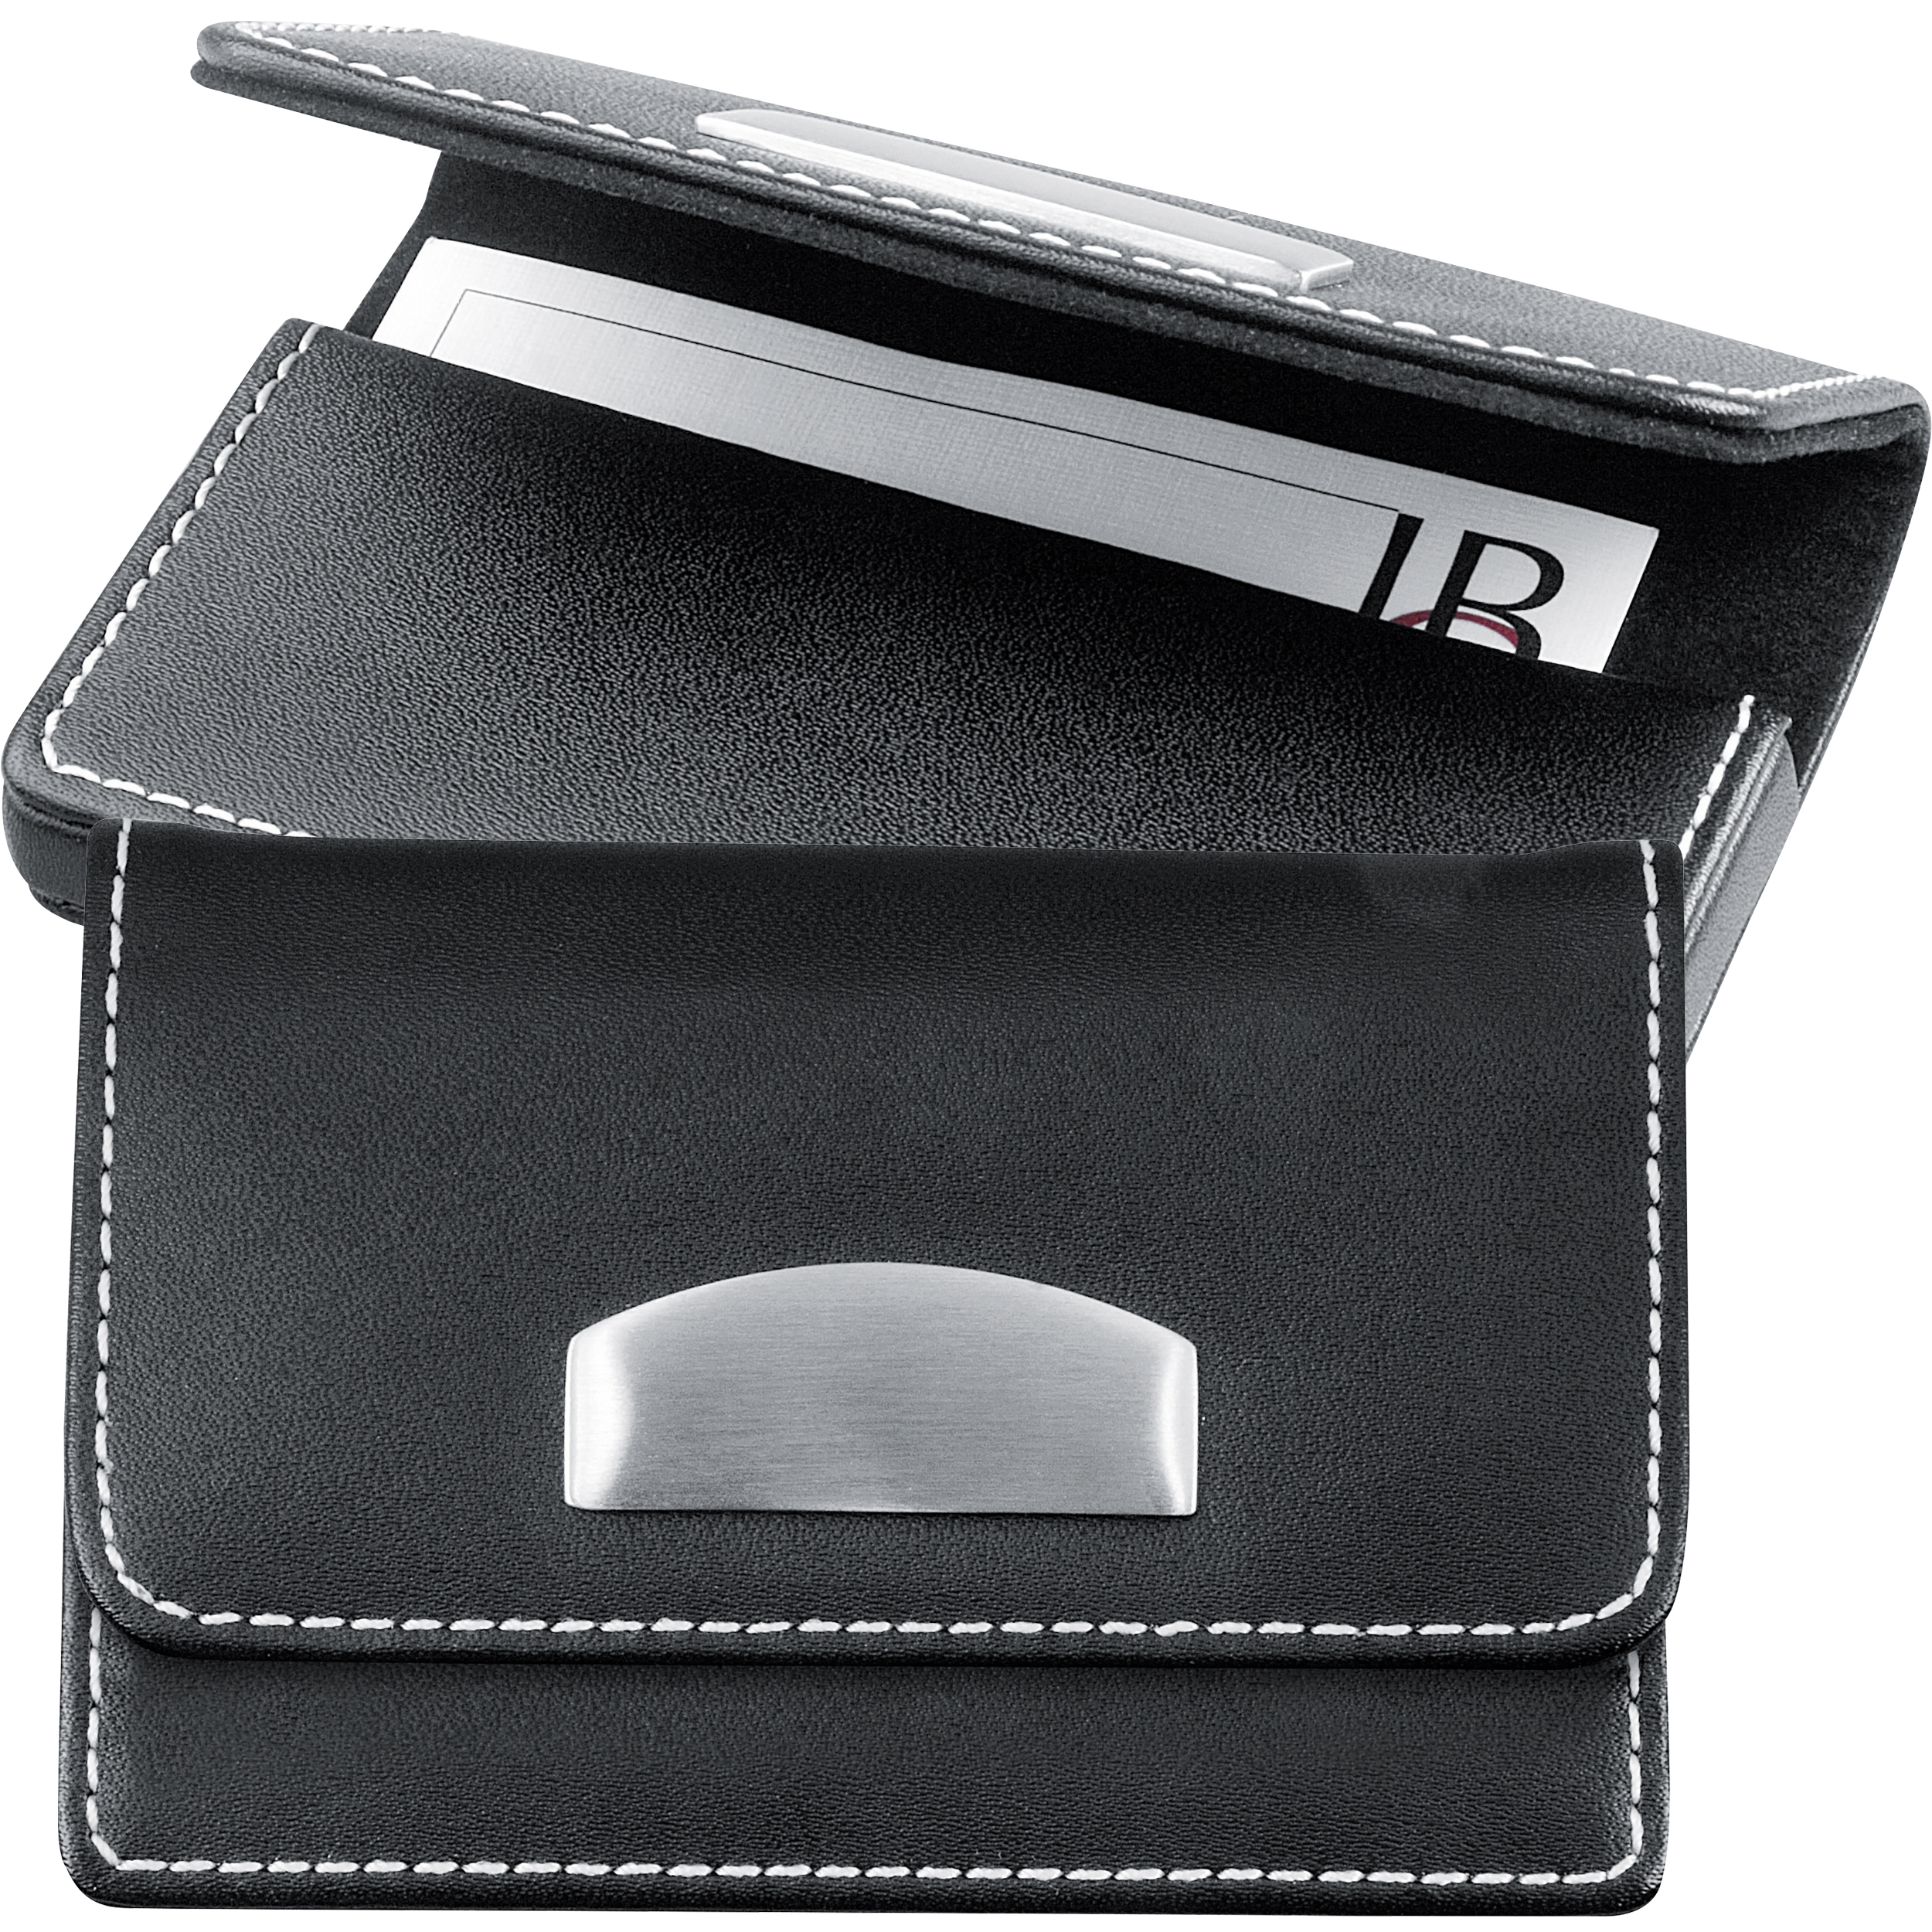 CrisMa leather business card holder